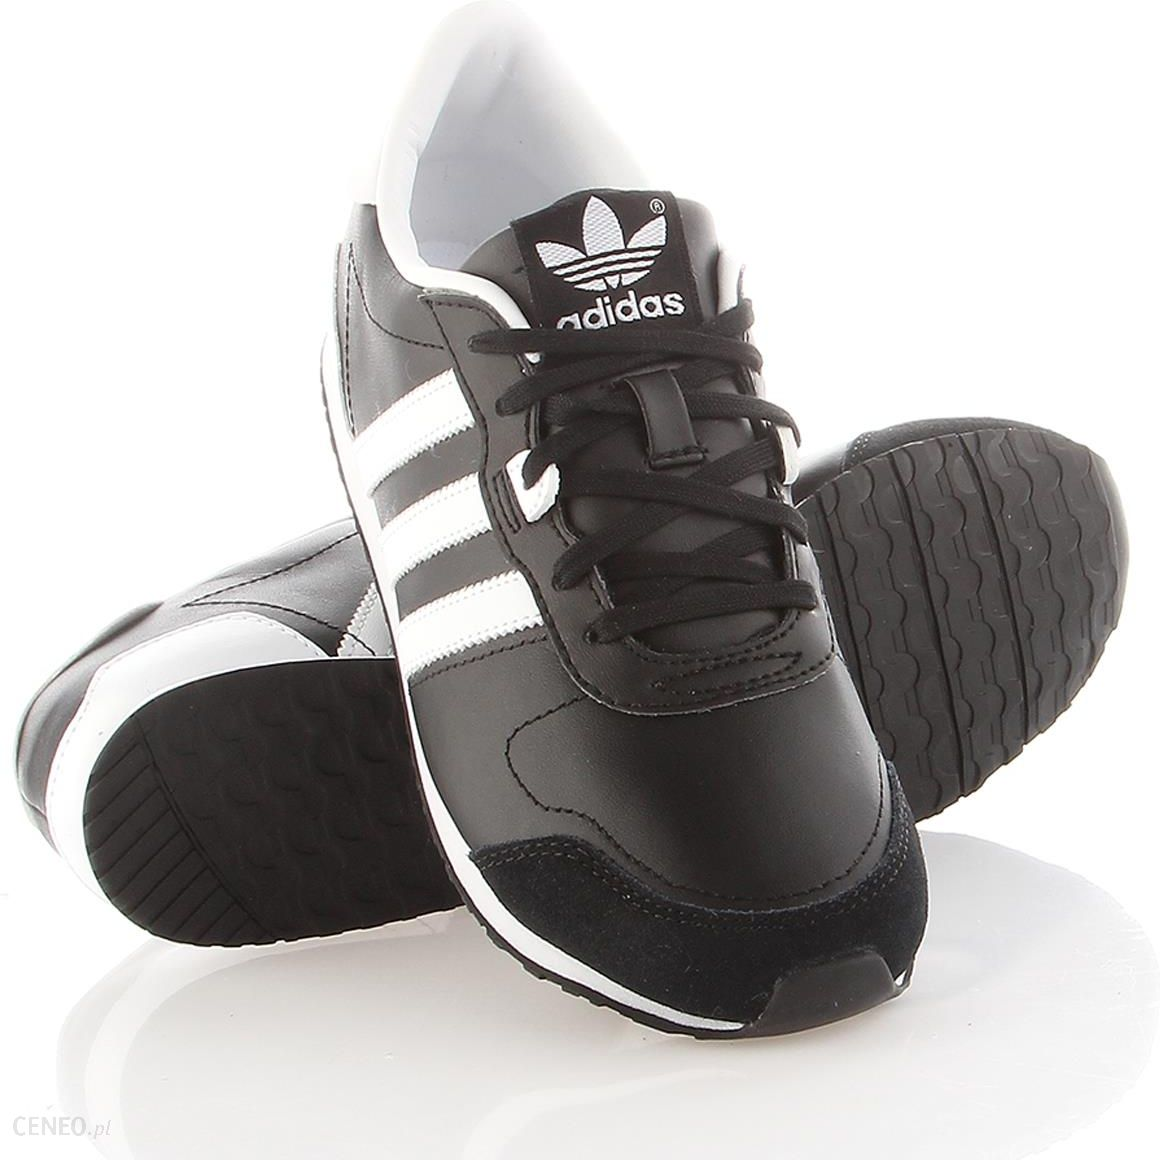 Adidas ZX 700 BE LO Wmns M19379